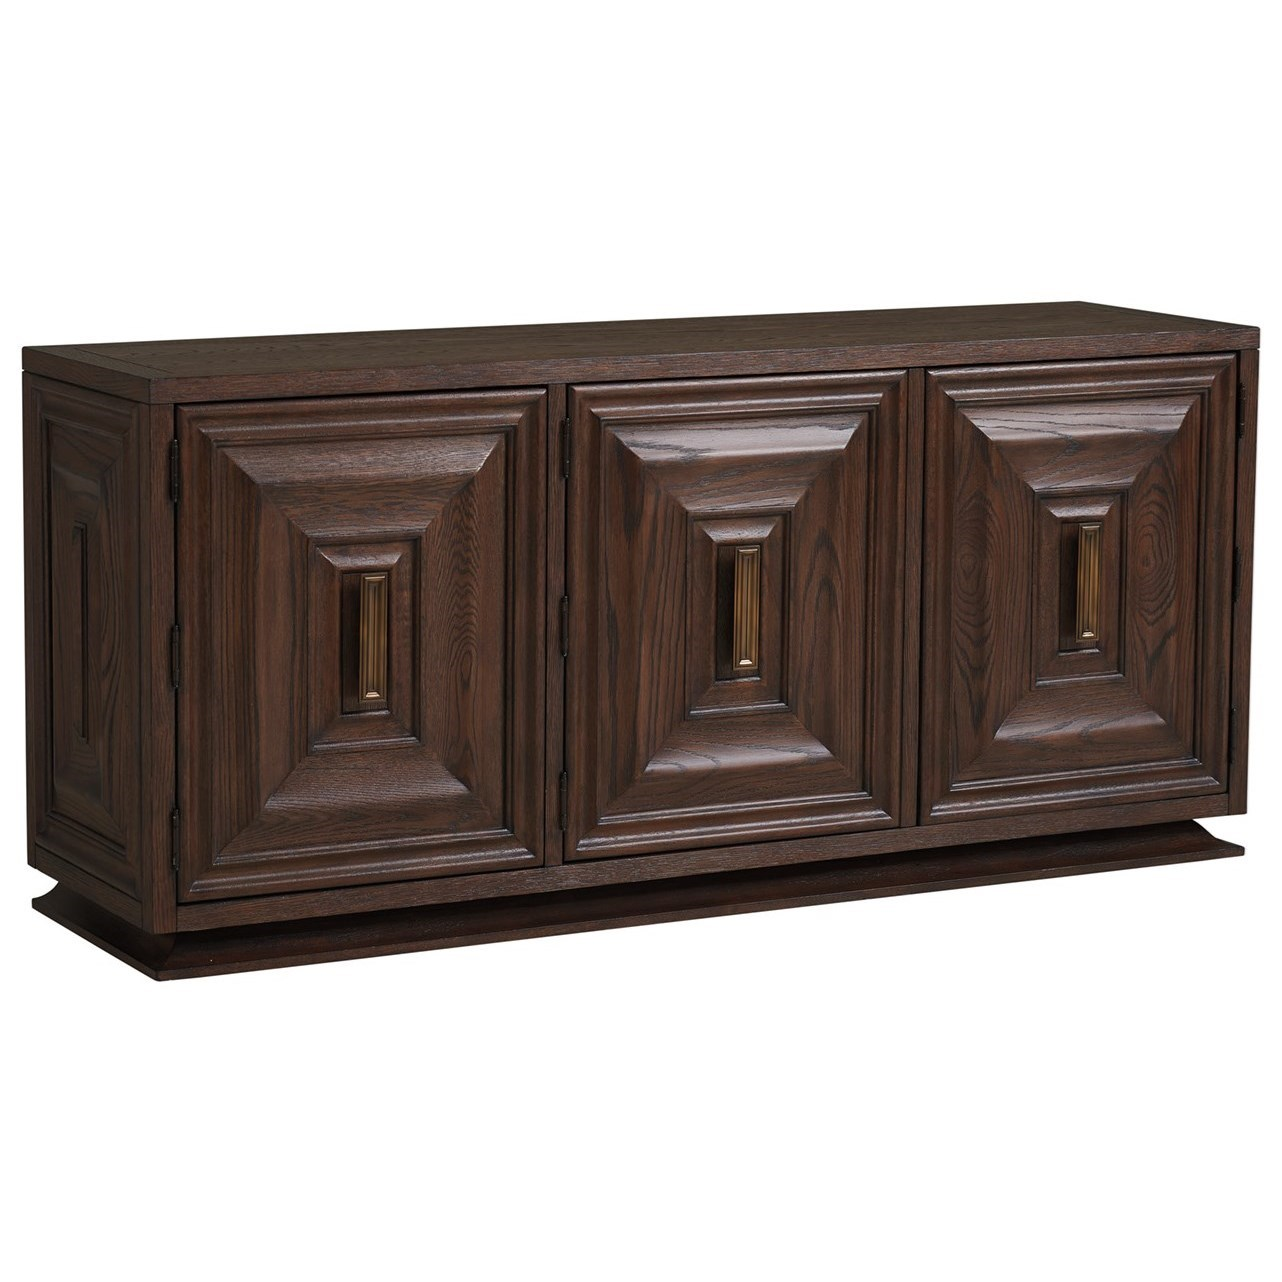 Barrymore Easton Media Console by Sligh at Baer's Furniture